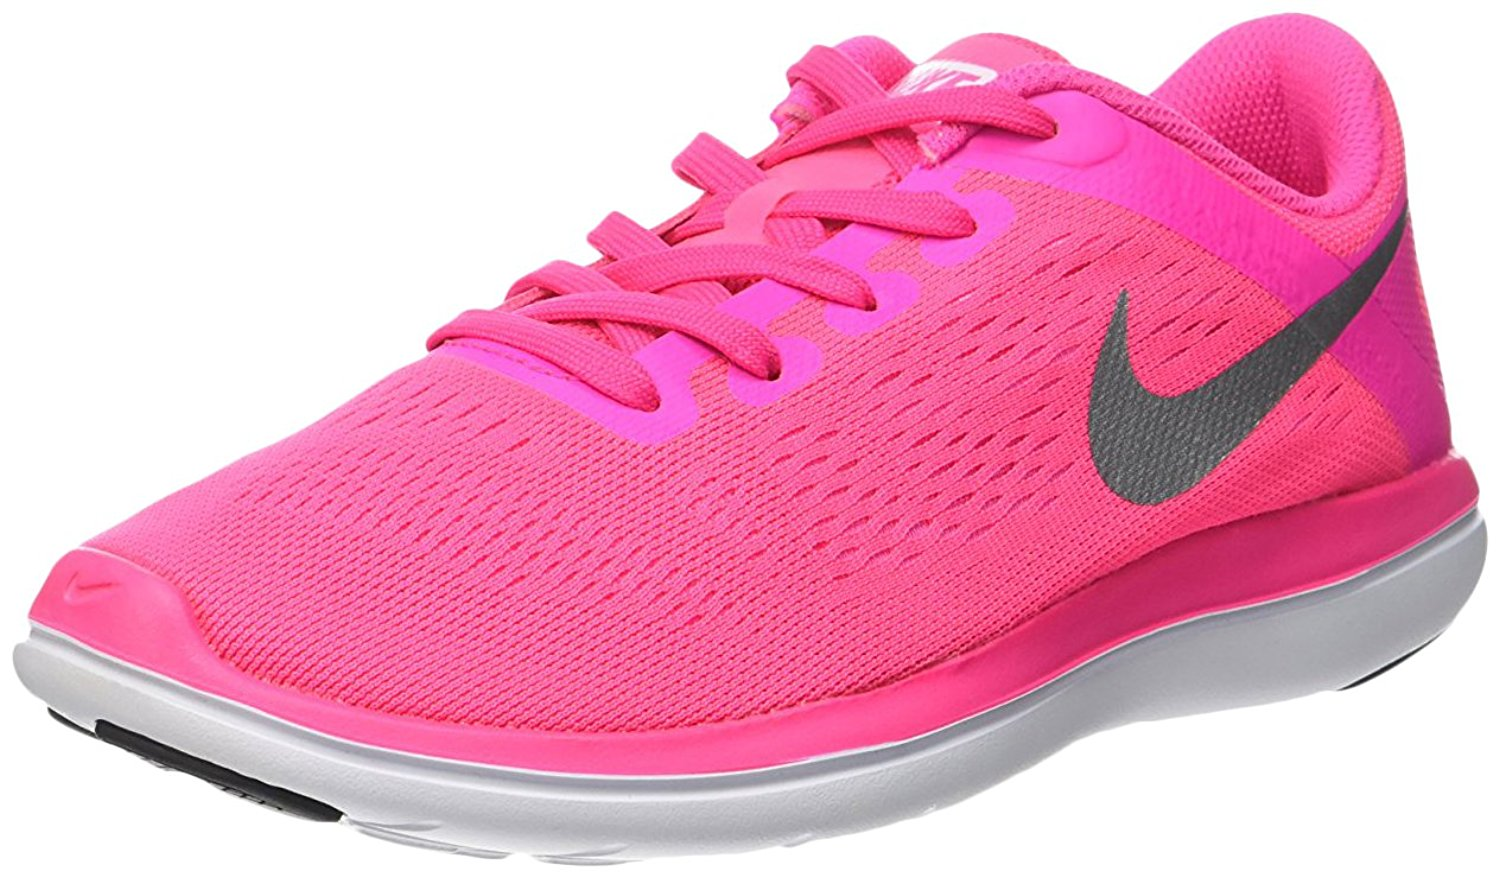 00d20efcb64f4 Get Quotations · Nike Kids Flex 2016 Rn (GS) Running Shoe